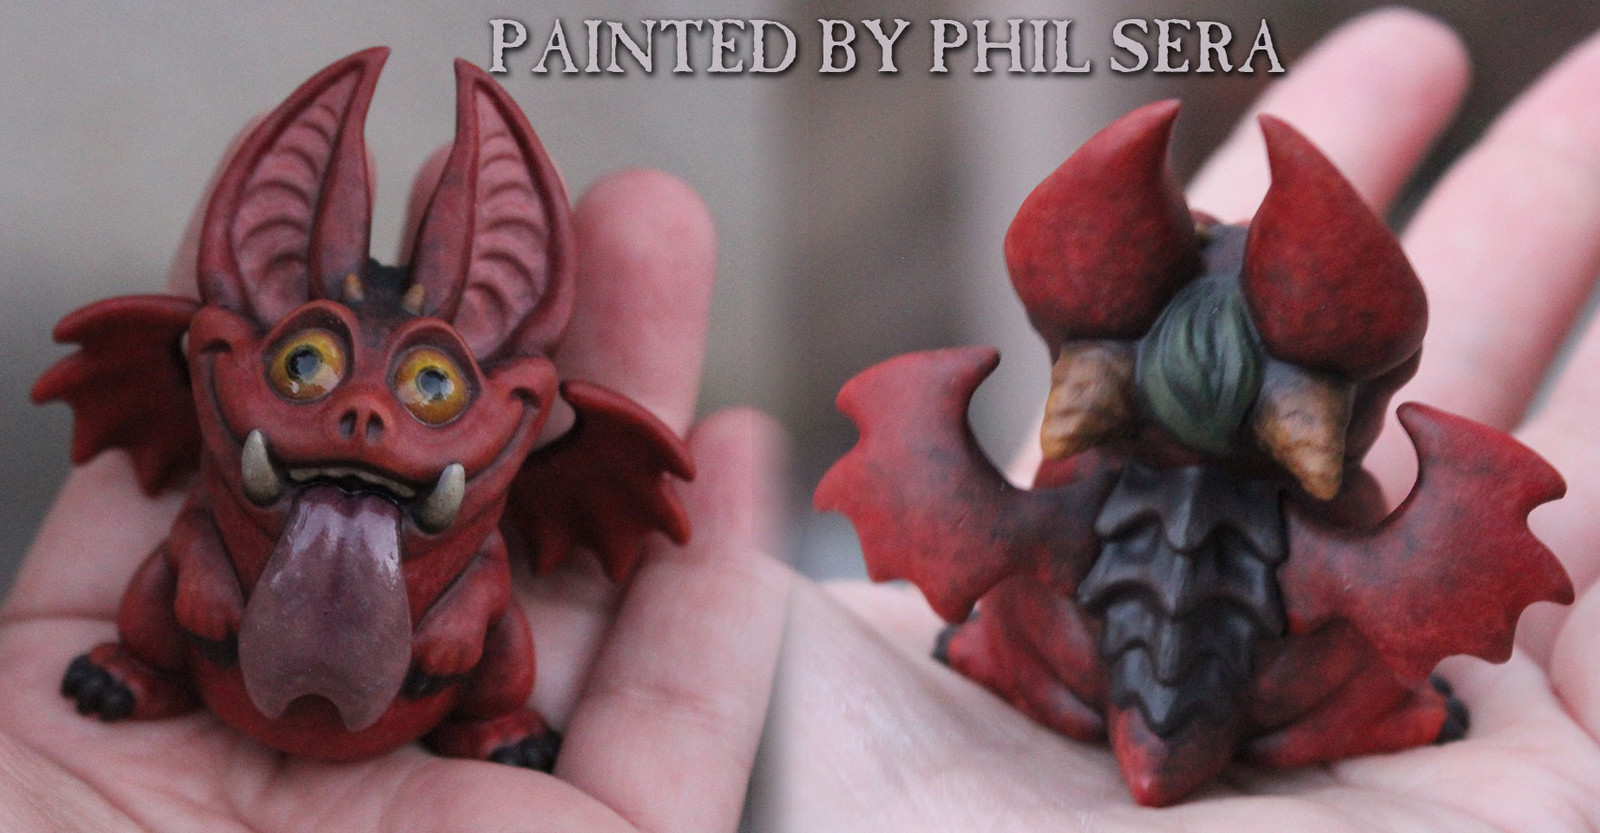 Painted up by Phil Sera